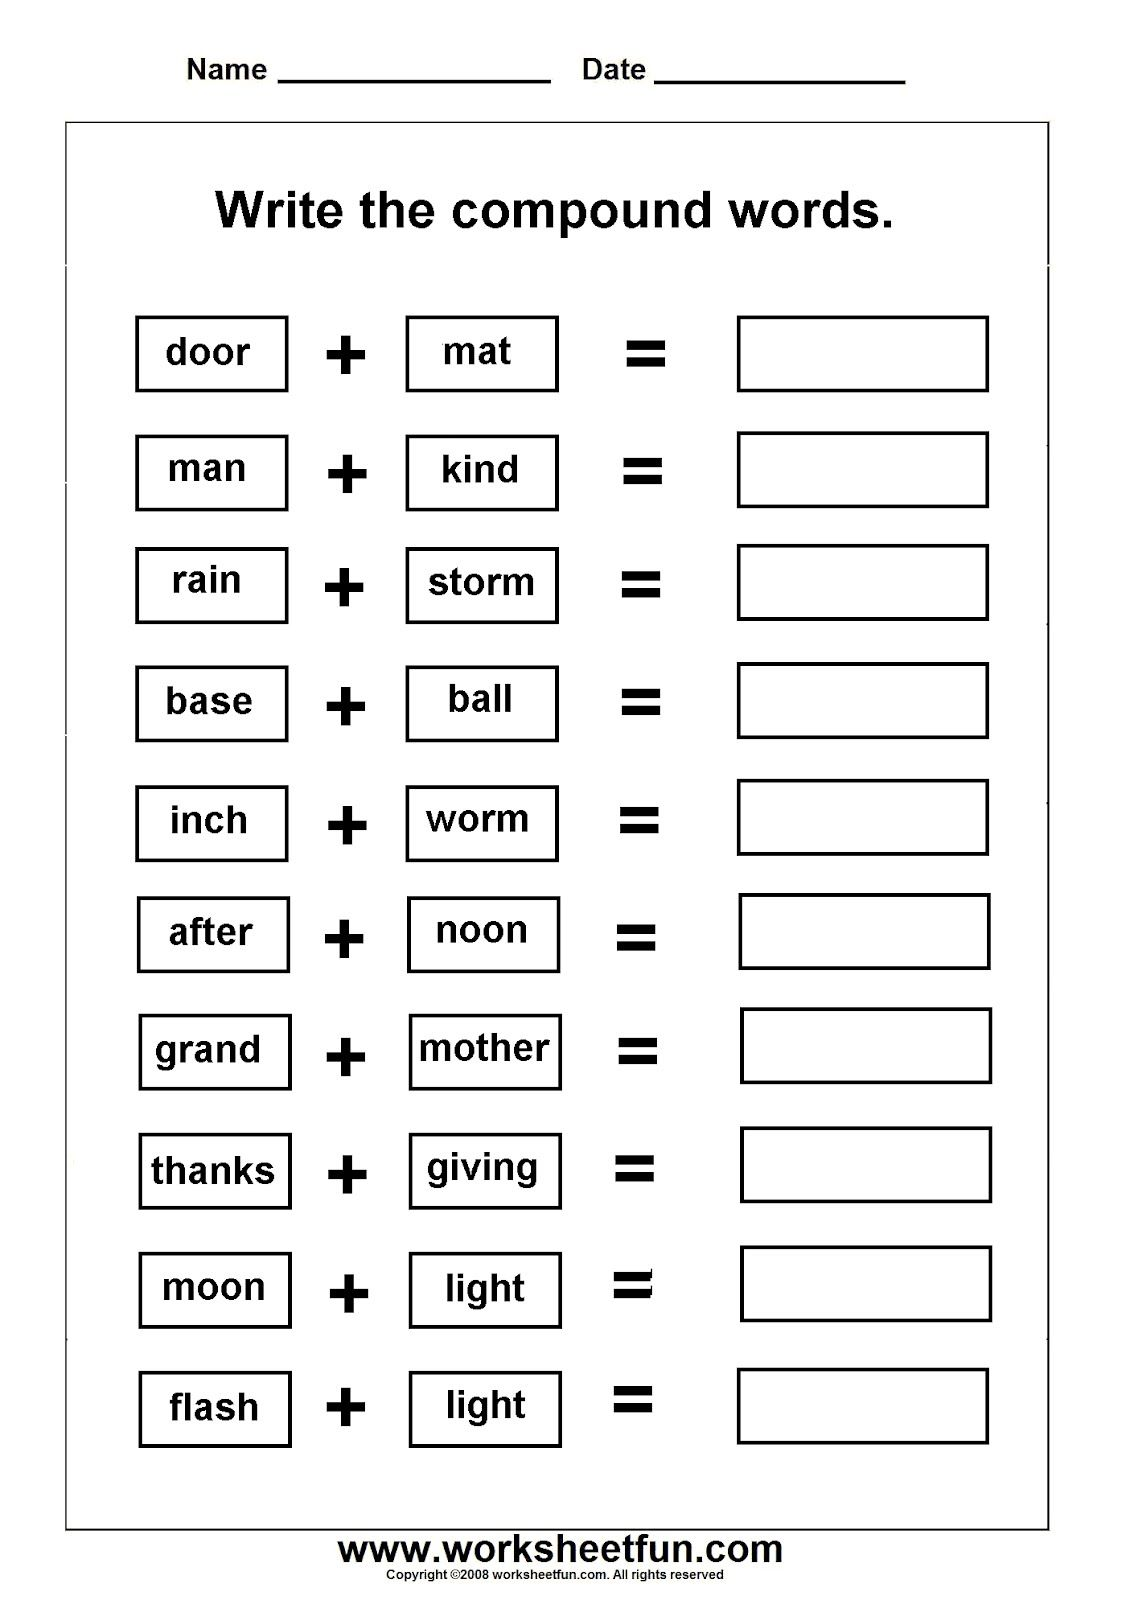 Worksheets On Compound Words With Pictures | ELA activities | Pinterest